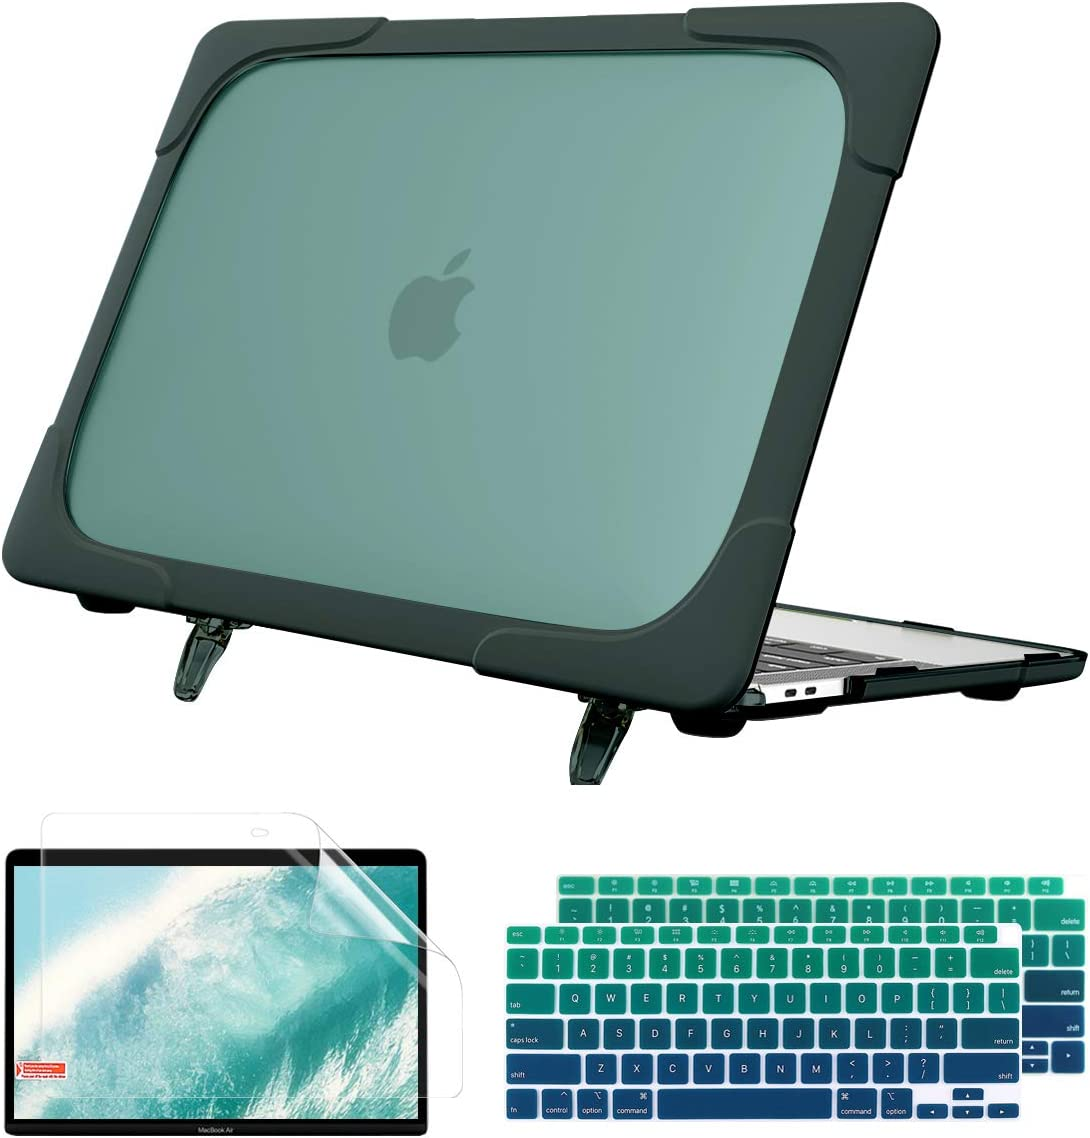 Batianda Case for MacBook Air 13 Inch 2020 2019 2018 Model A2337 M1 A2179 A1932 with Touch ID, Heavy Duty Shockproof Hard Shell Case with Fold Kickstand & Keyboard Cover Skin, Deep Teal